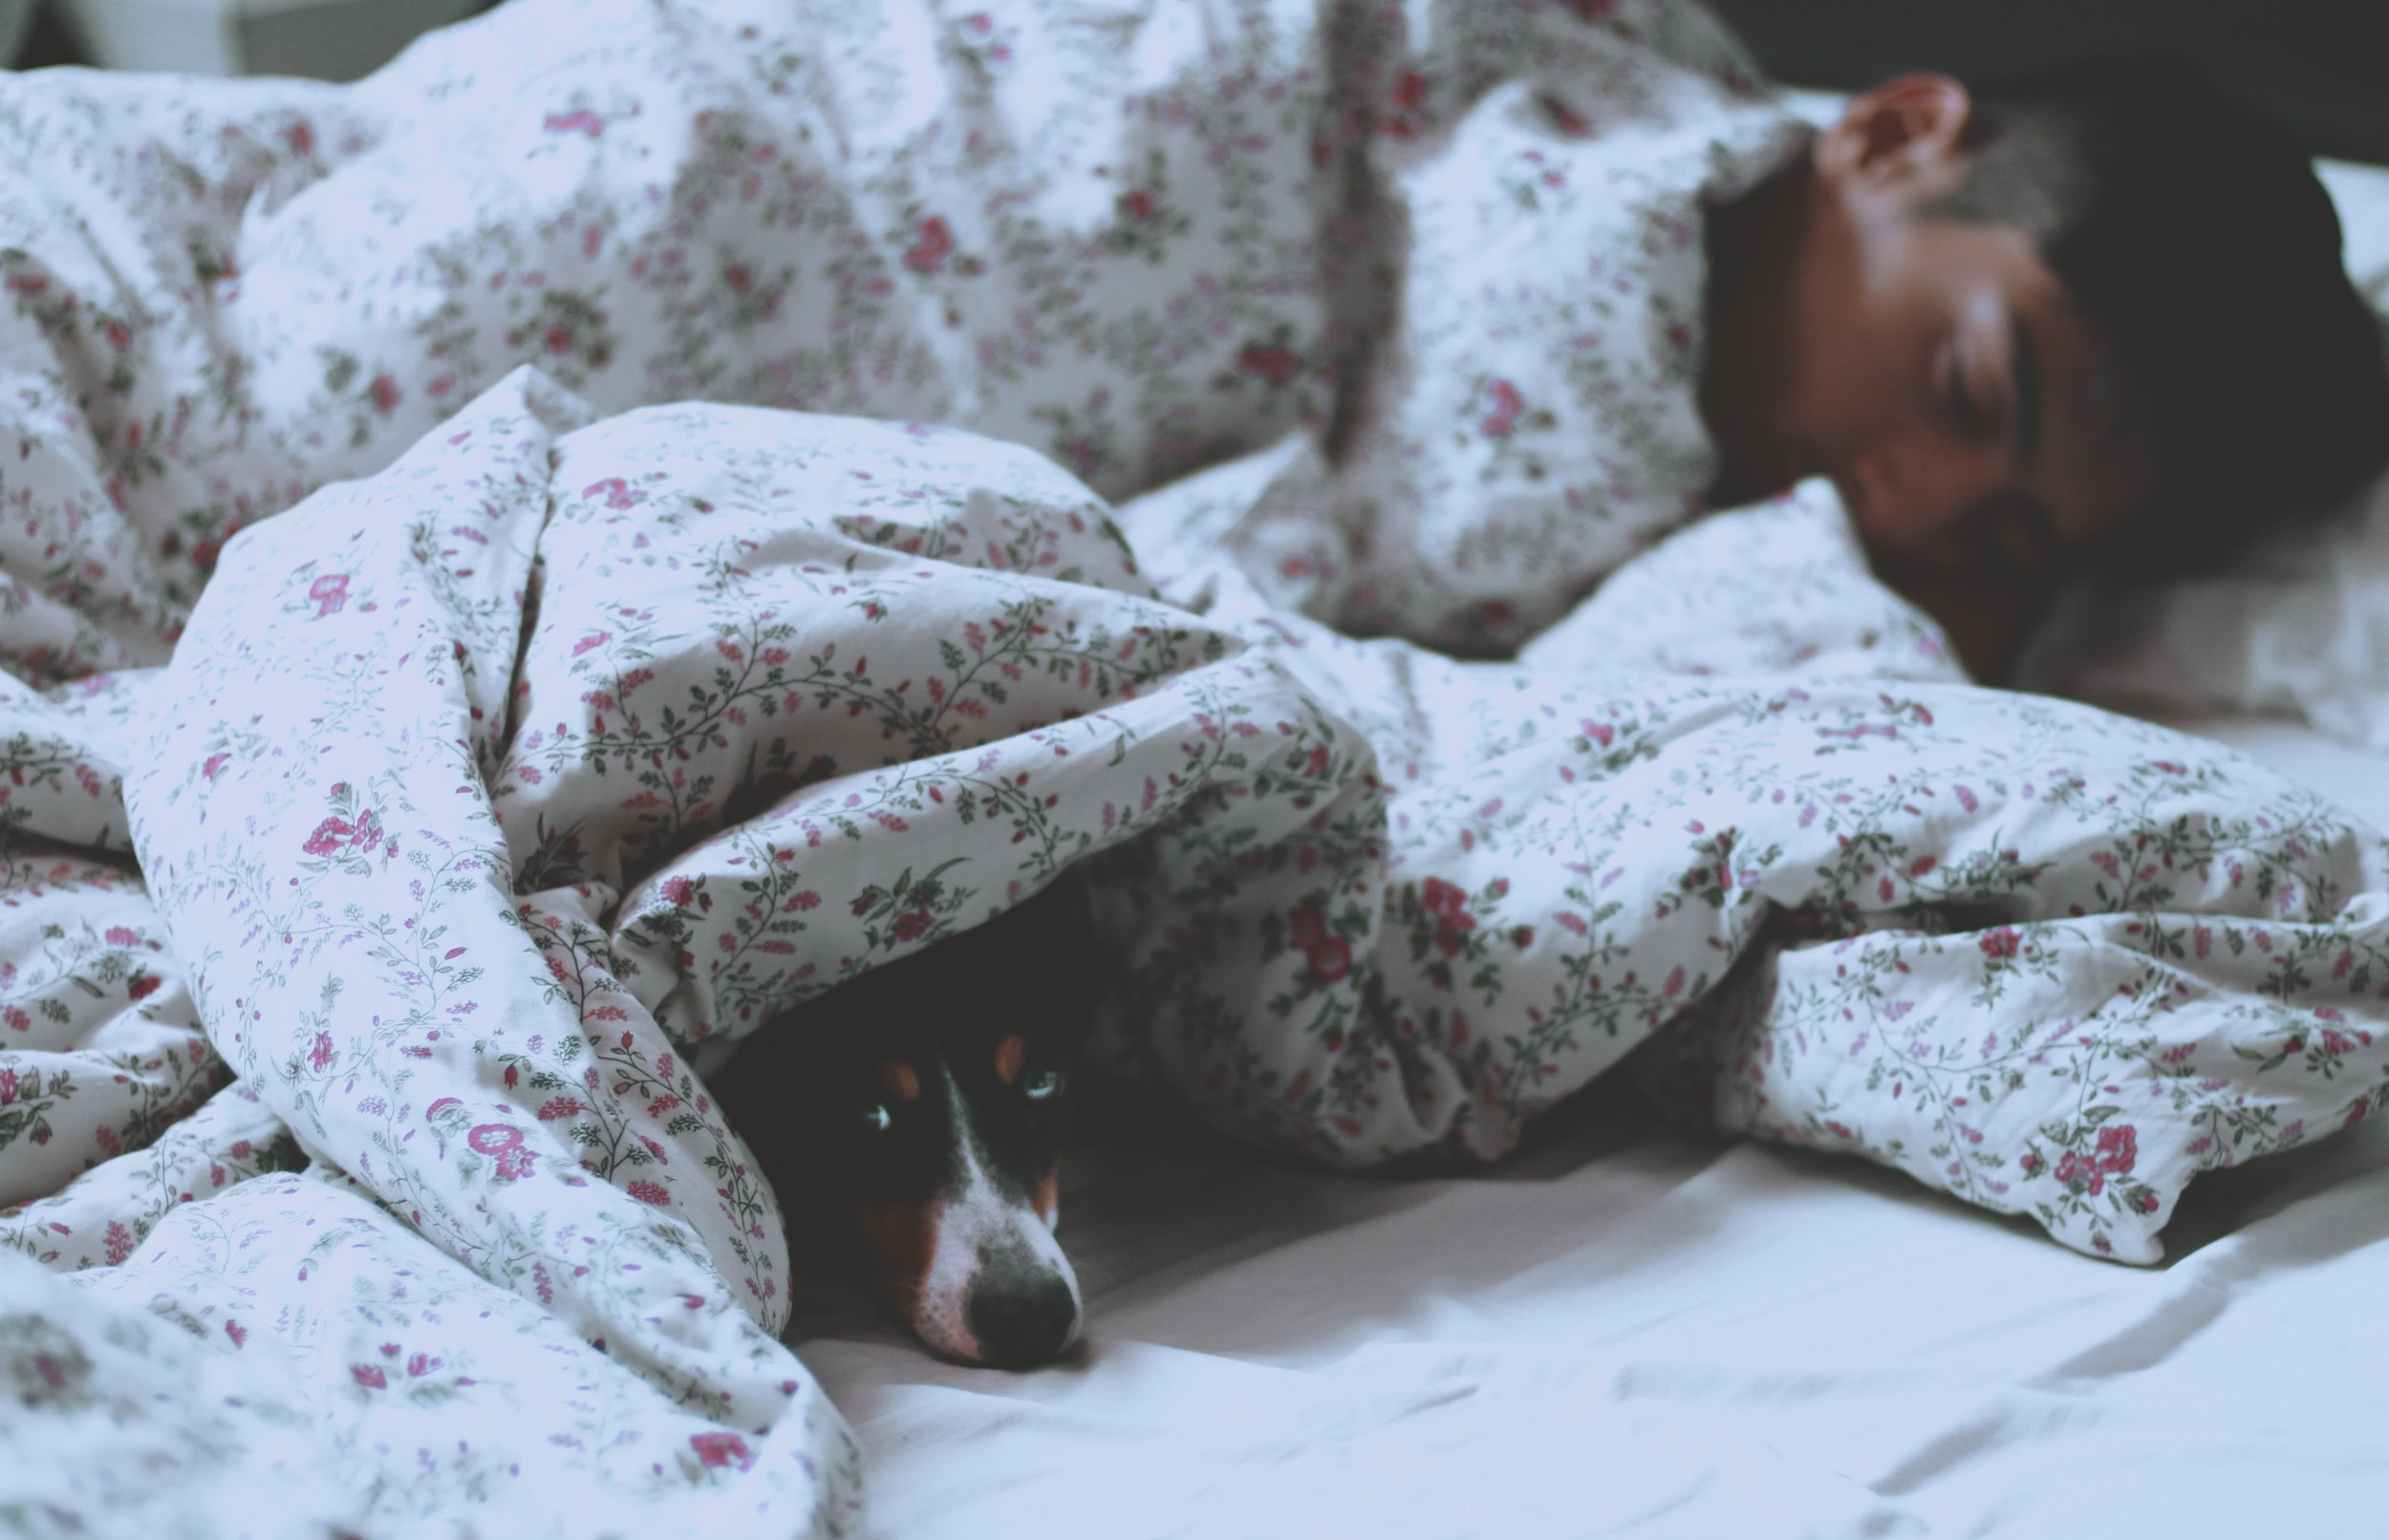 Dog and man in bed.jpg